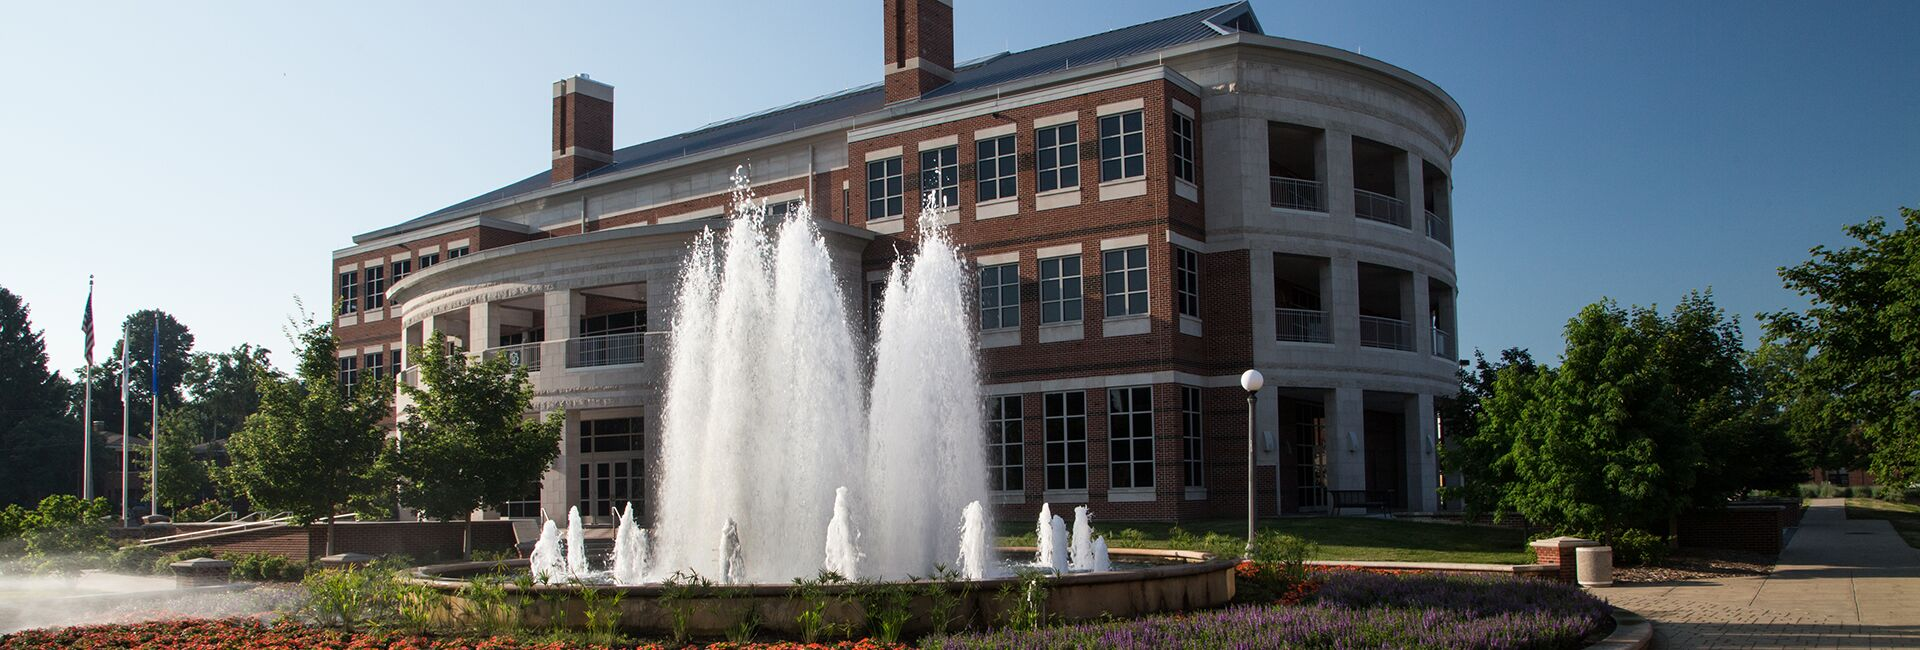 The fountain in front of the Alice Campbell Alumni Center on the Illinois campus